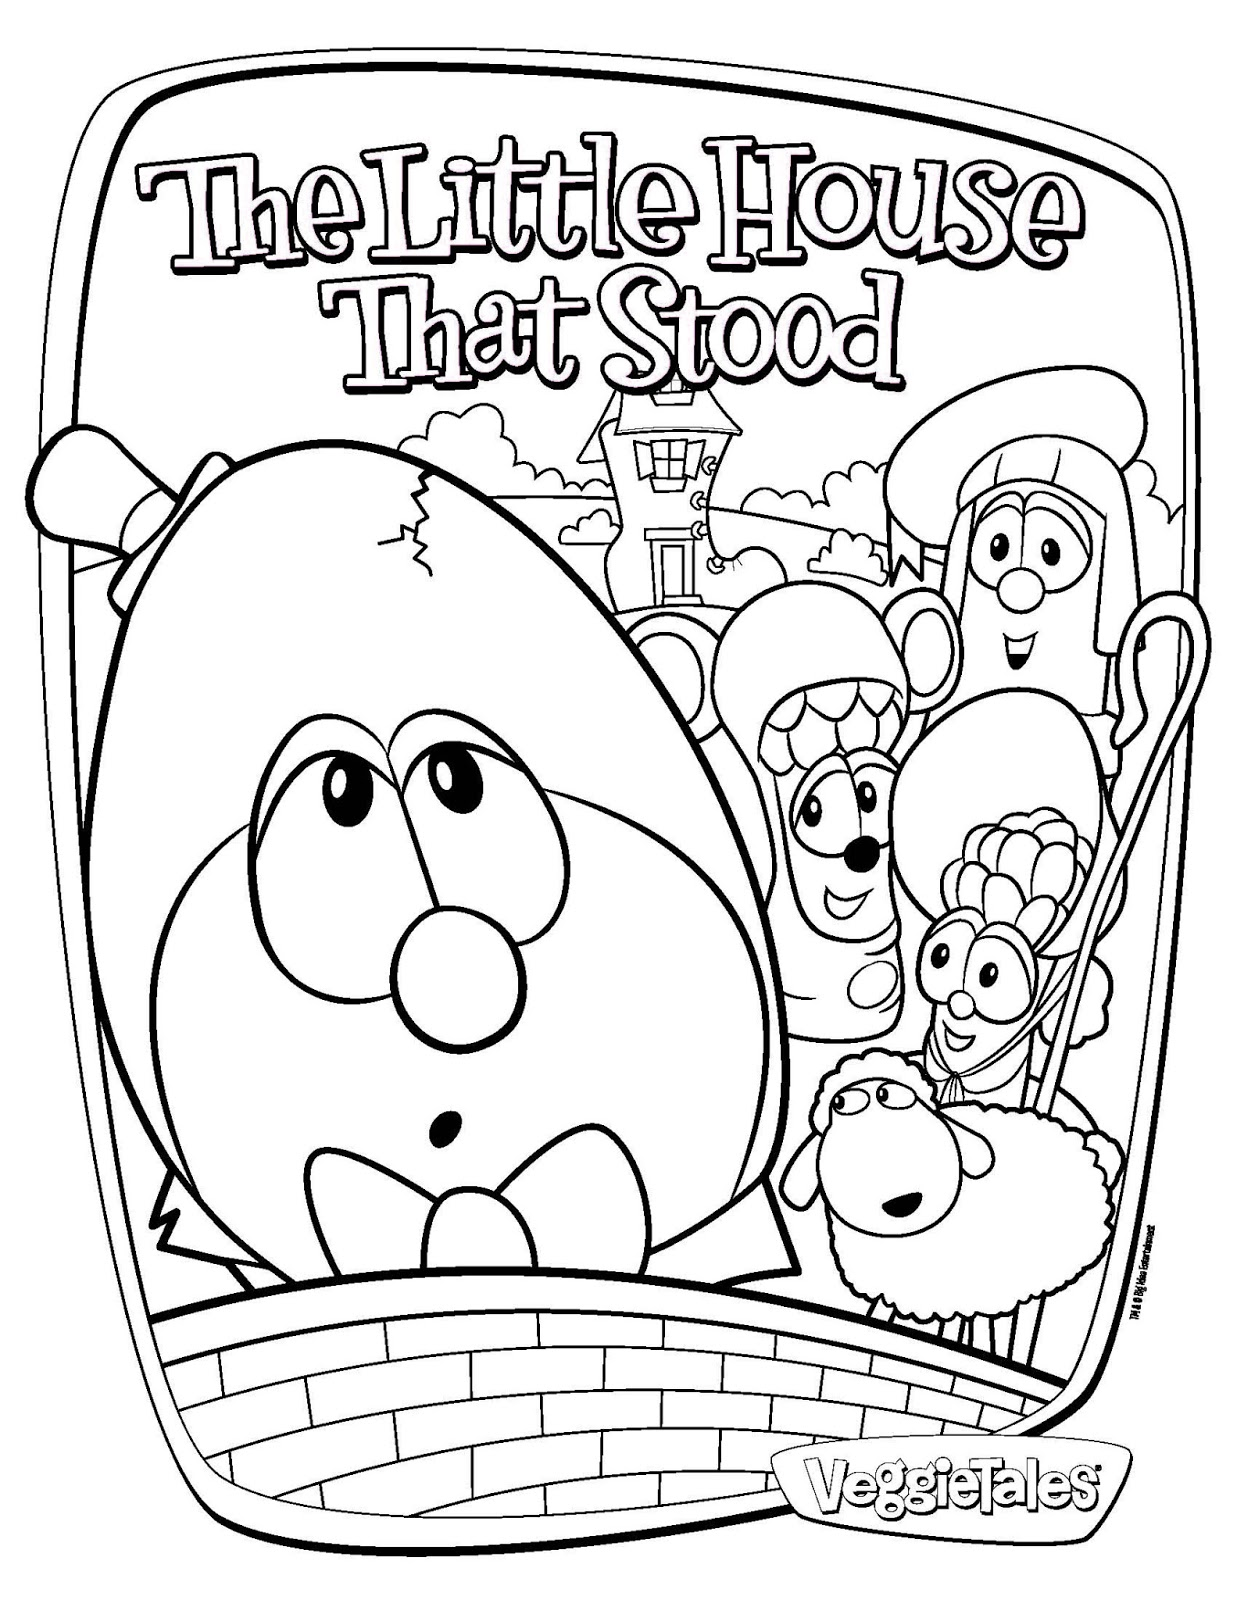 coloring pages featuring veggie tales - photo#31